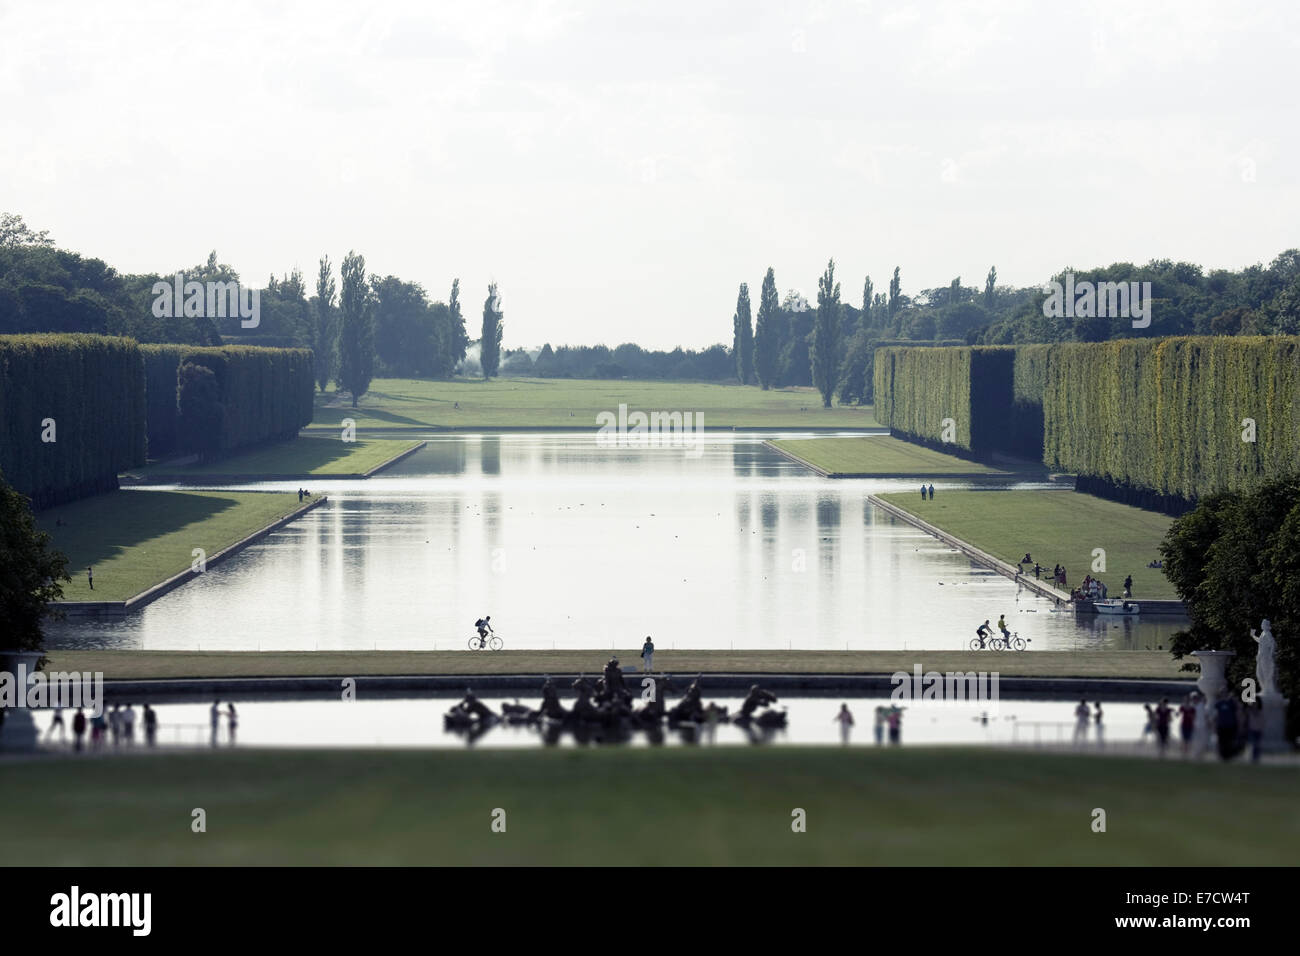 Fountain and Gardens at the Palace of Versailles,  Île-de-France, France - Stock Image